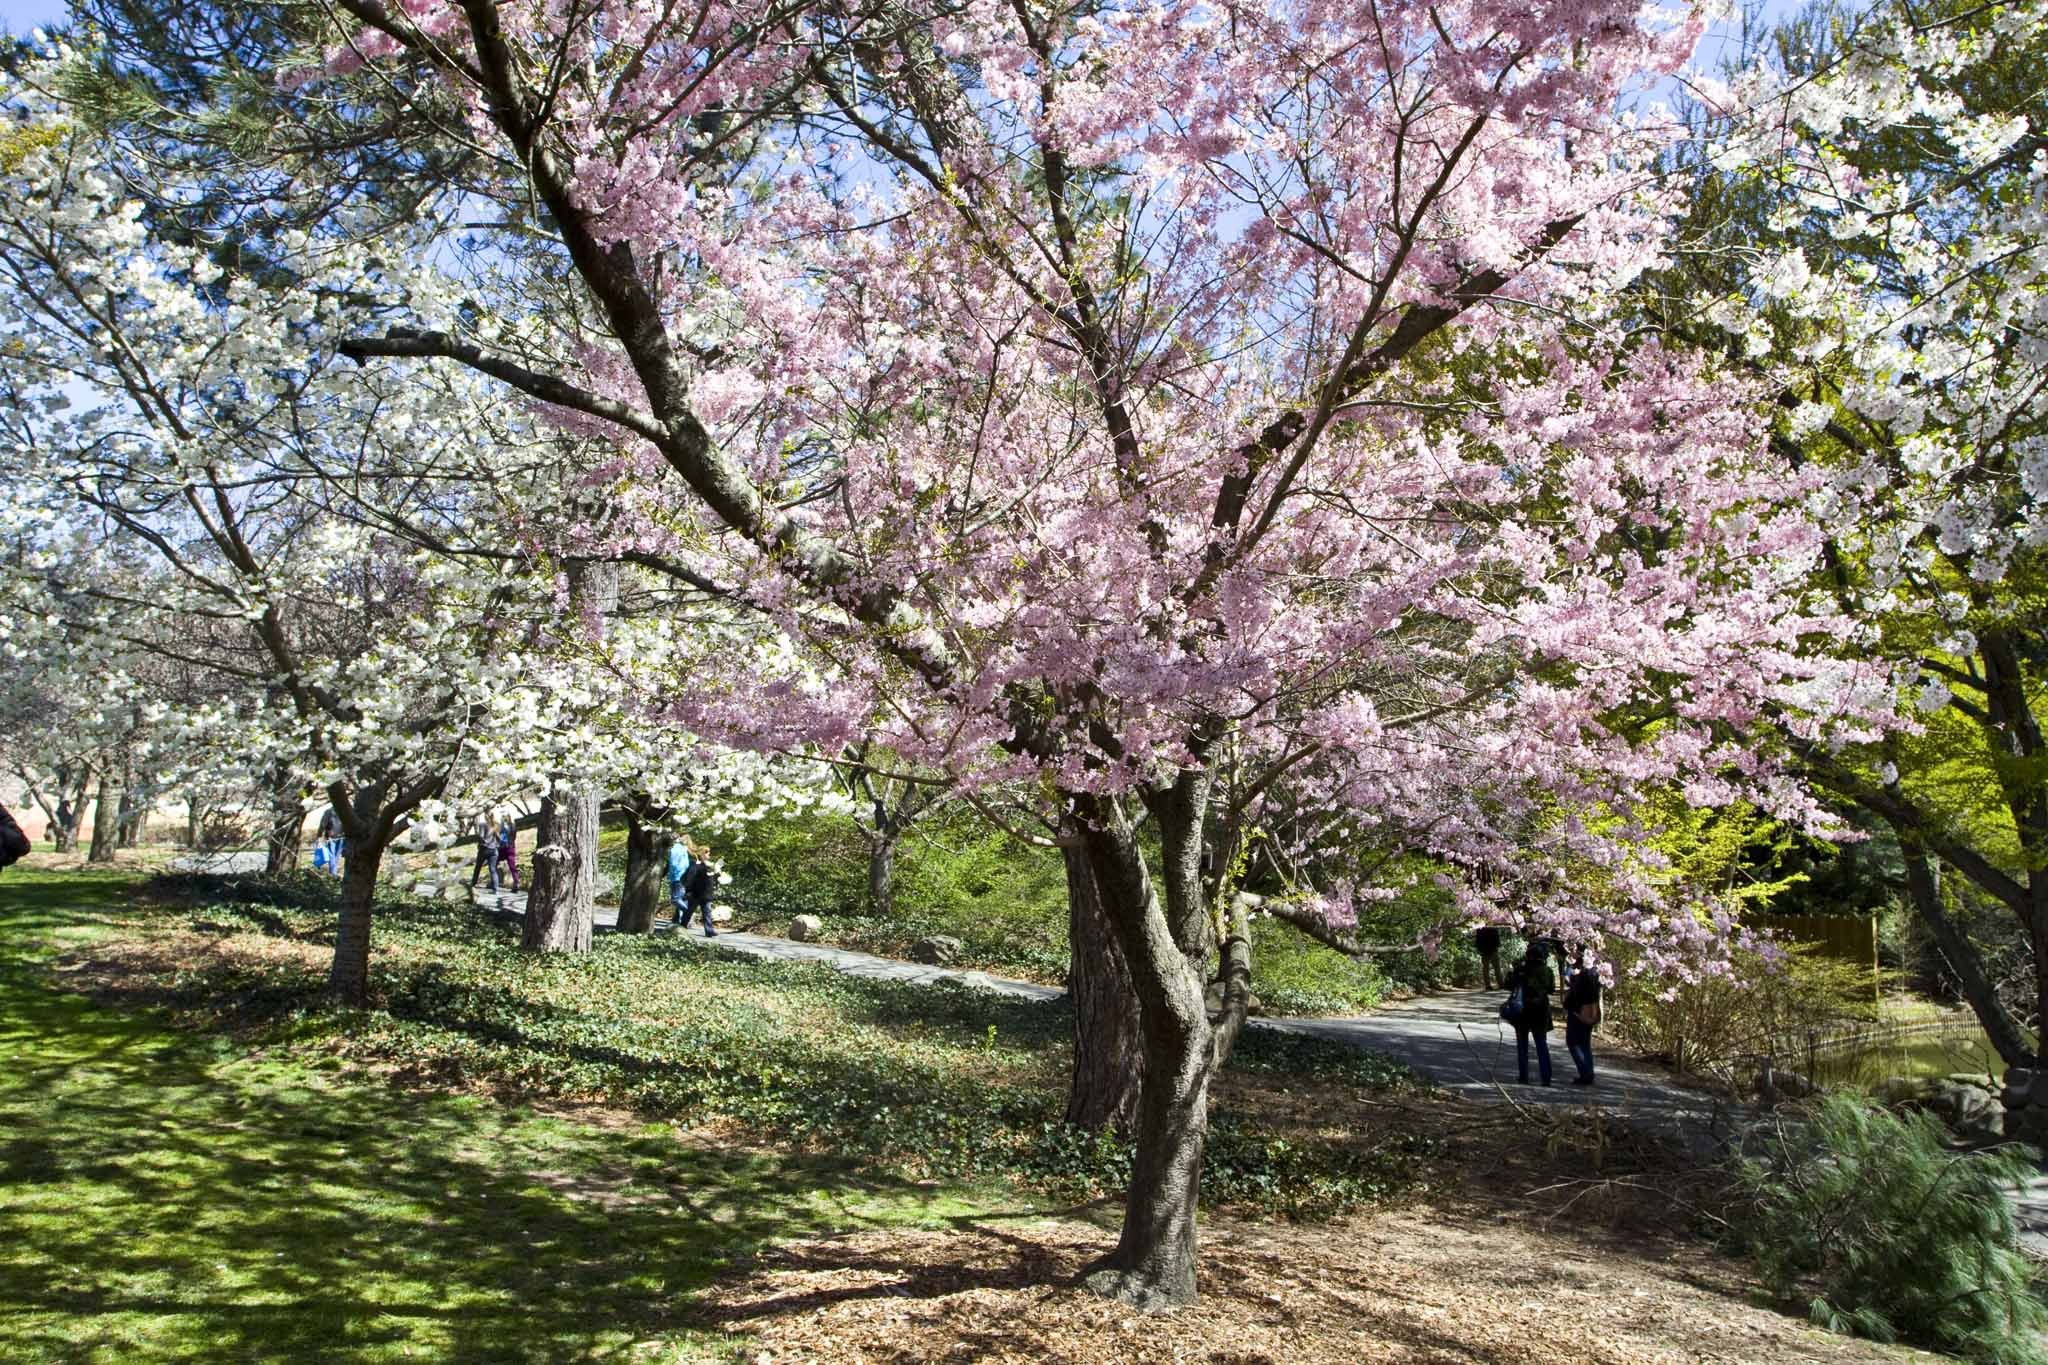 The best places to see cherry blossoms in NYC